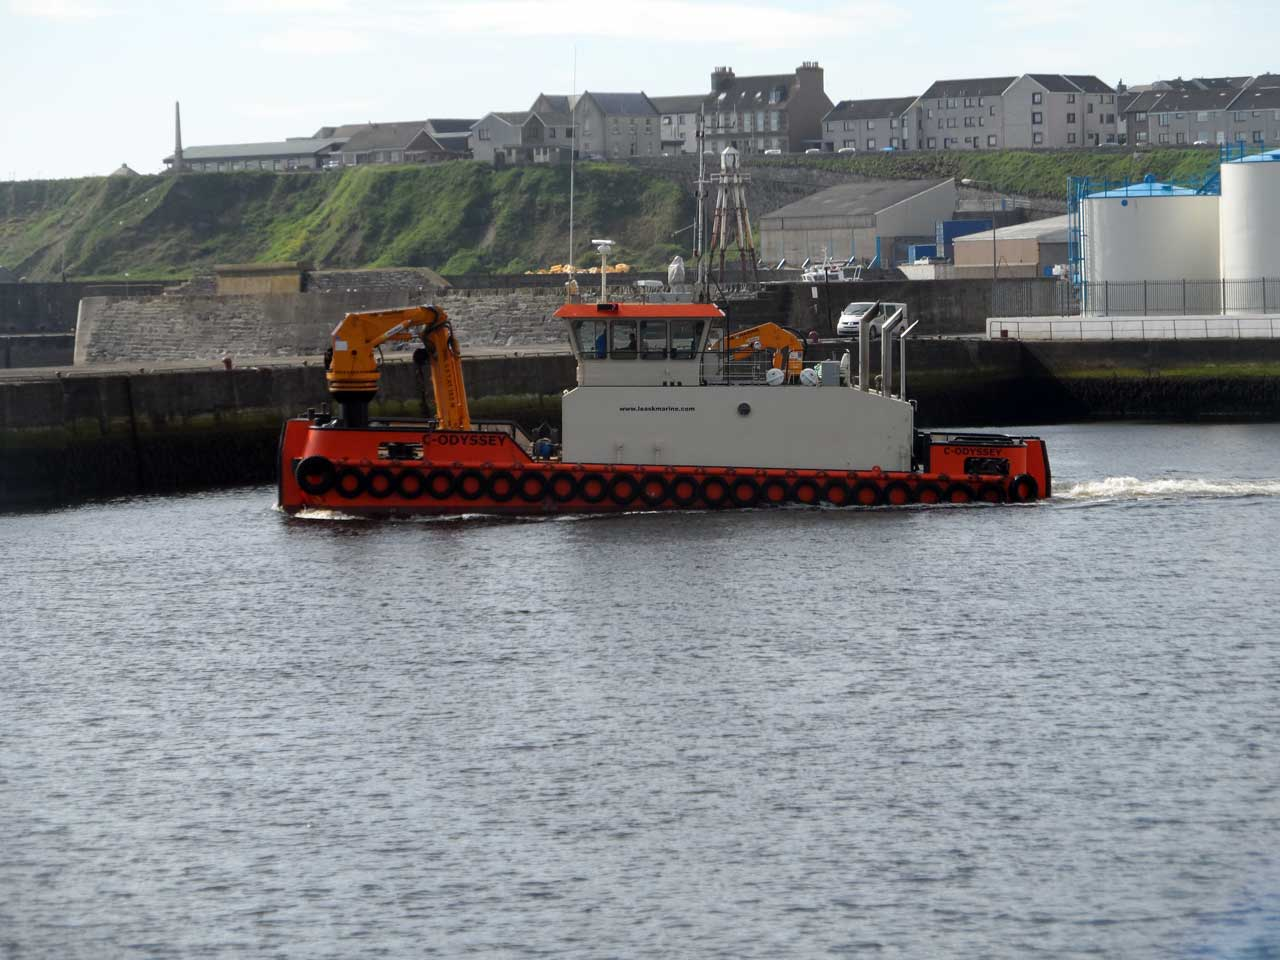 Photo: 170 Tonne Cable At Wick Bound For Subsea7 At Wester